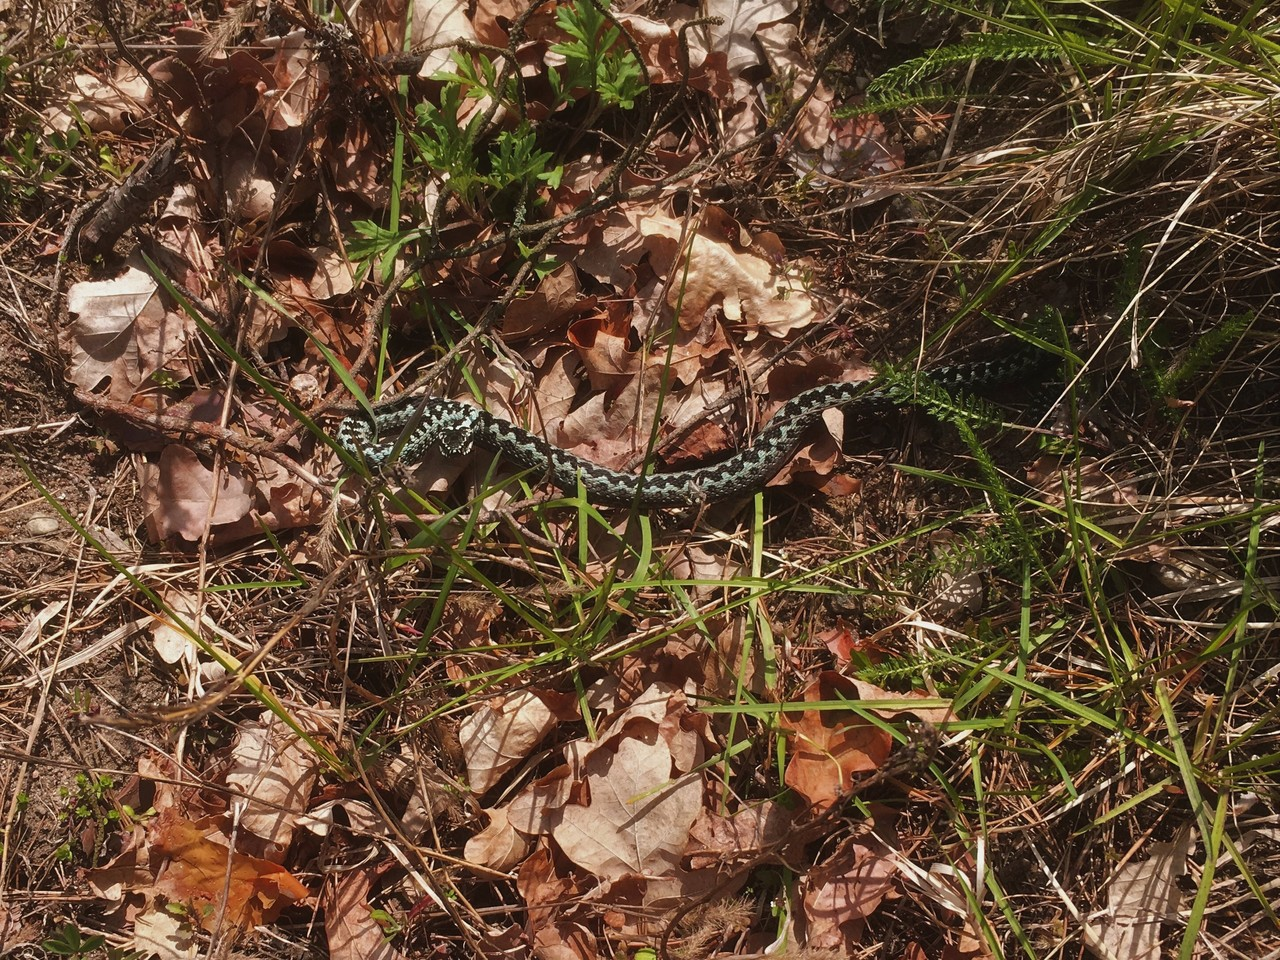 Common European Adder Vipera berus, Tuchola Pinewoods, Poland